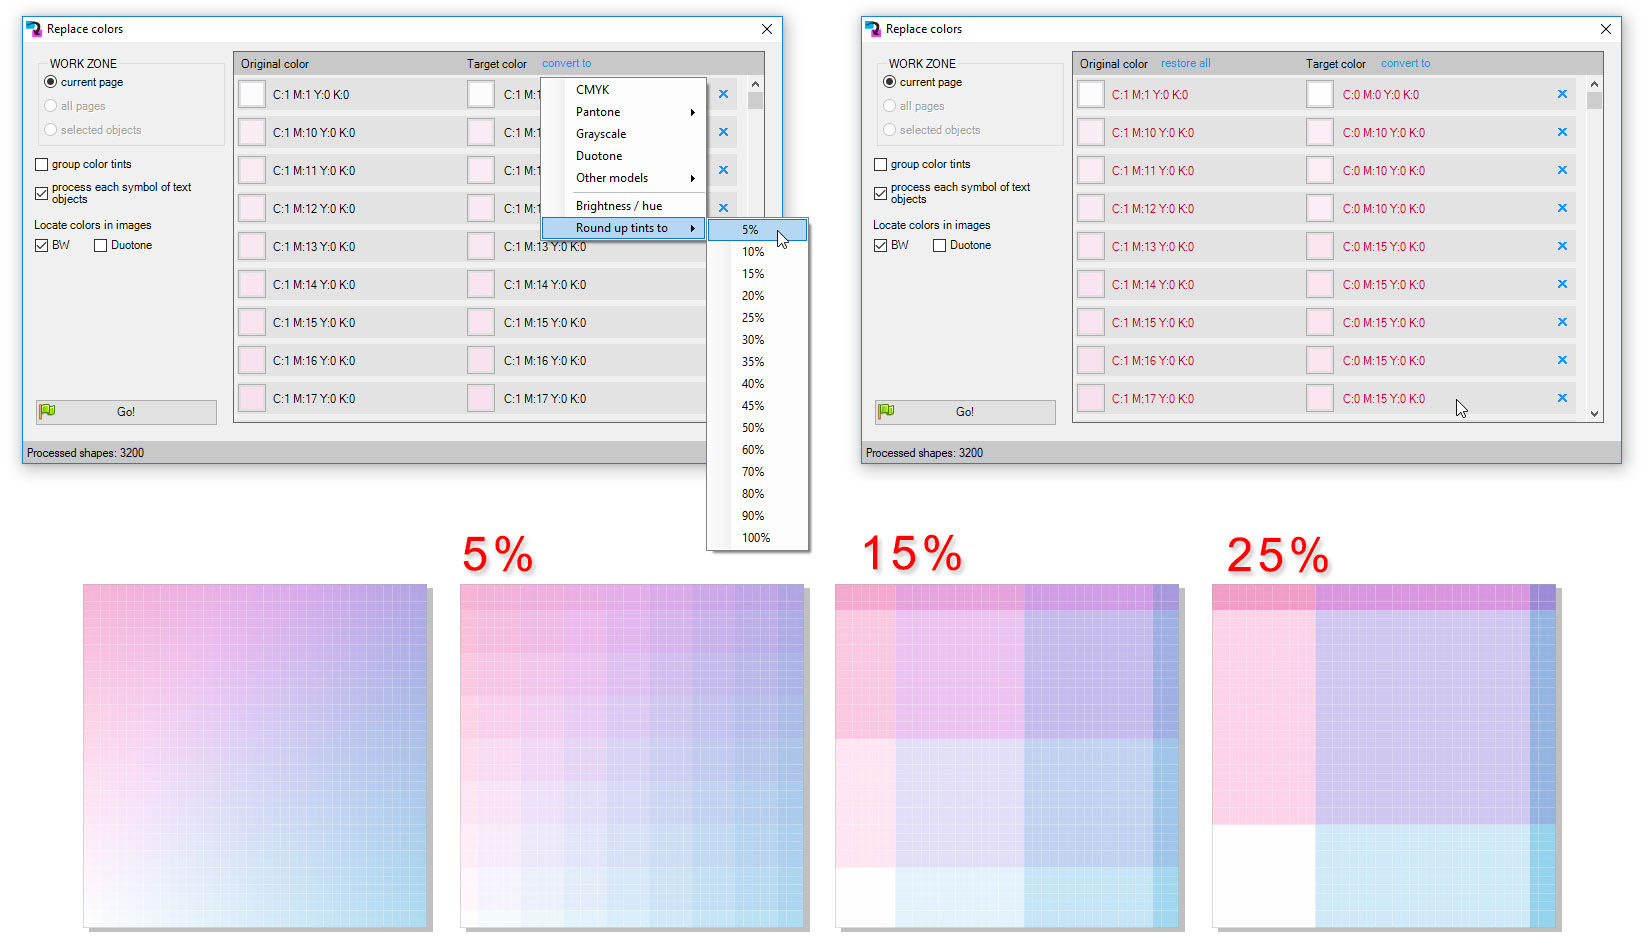 ReproScripts Core Replace colors plugin ~ roundup tints in colors